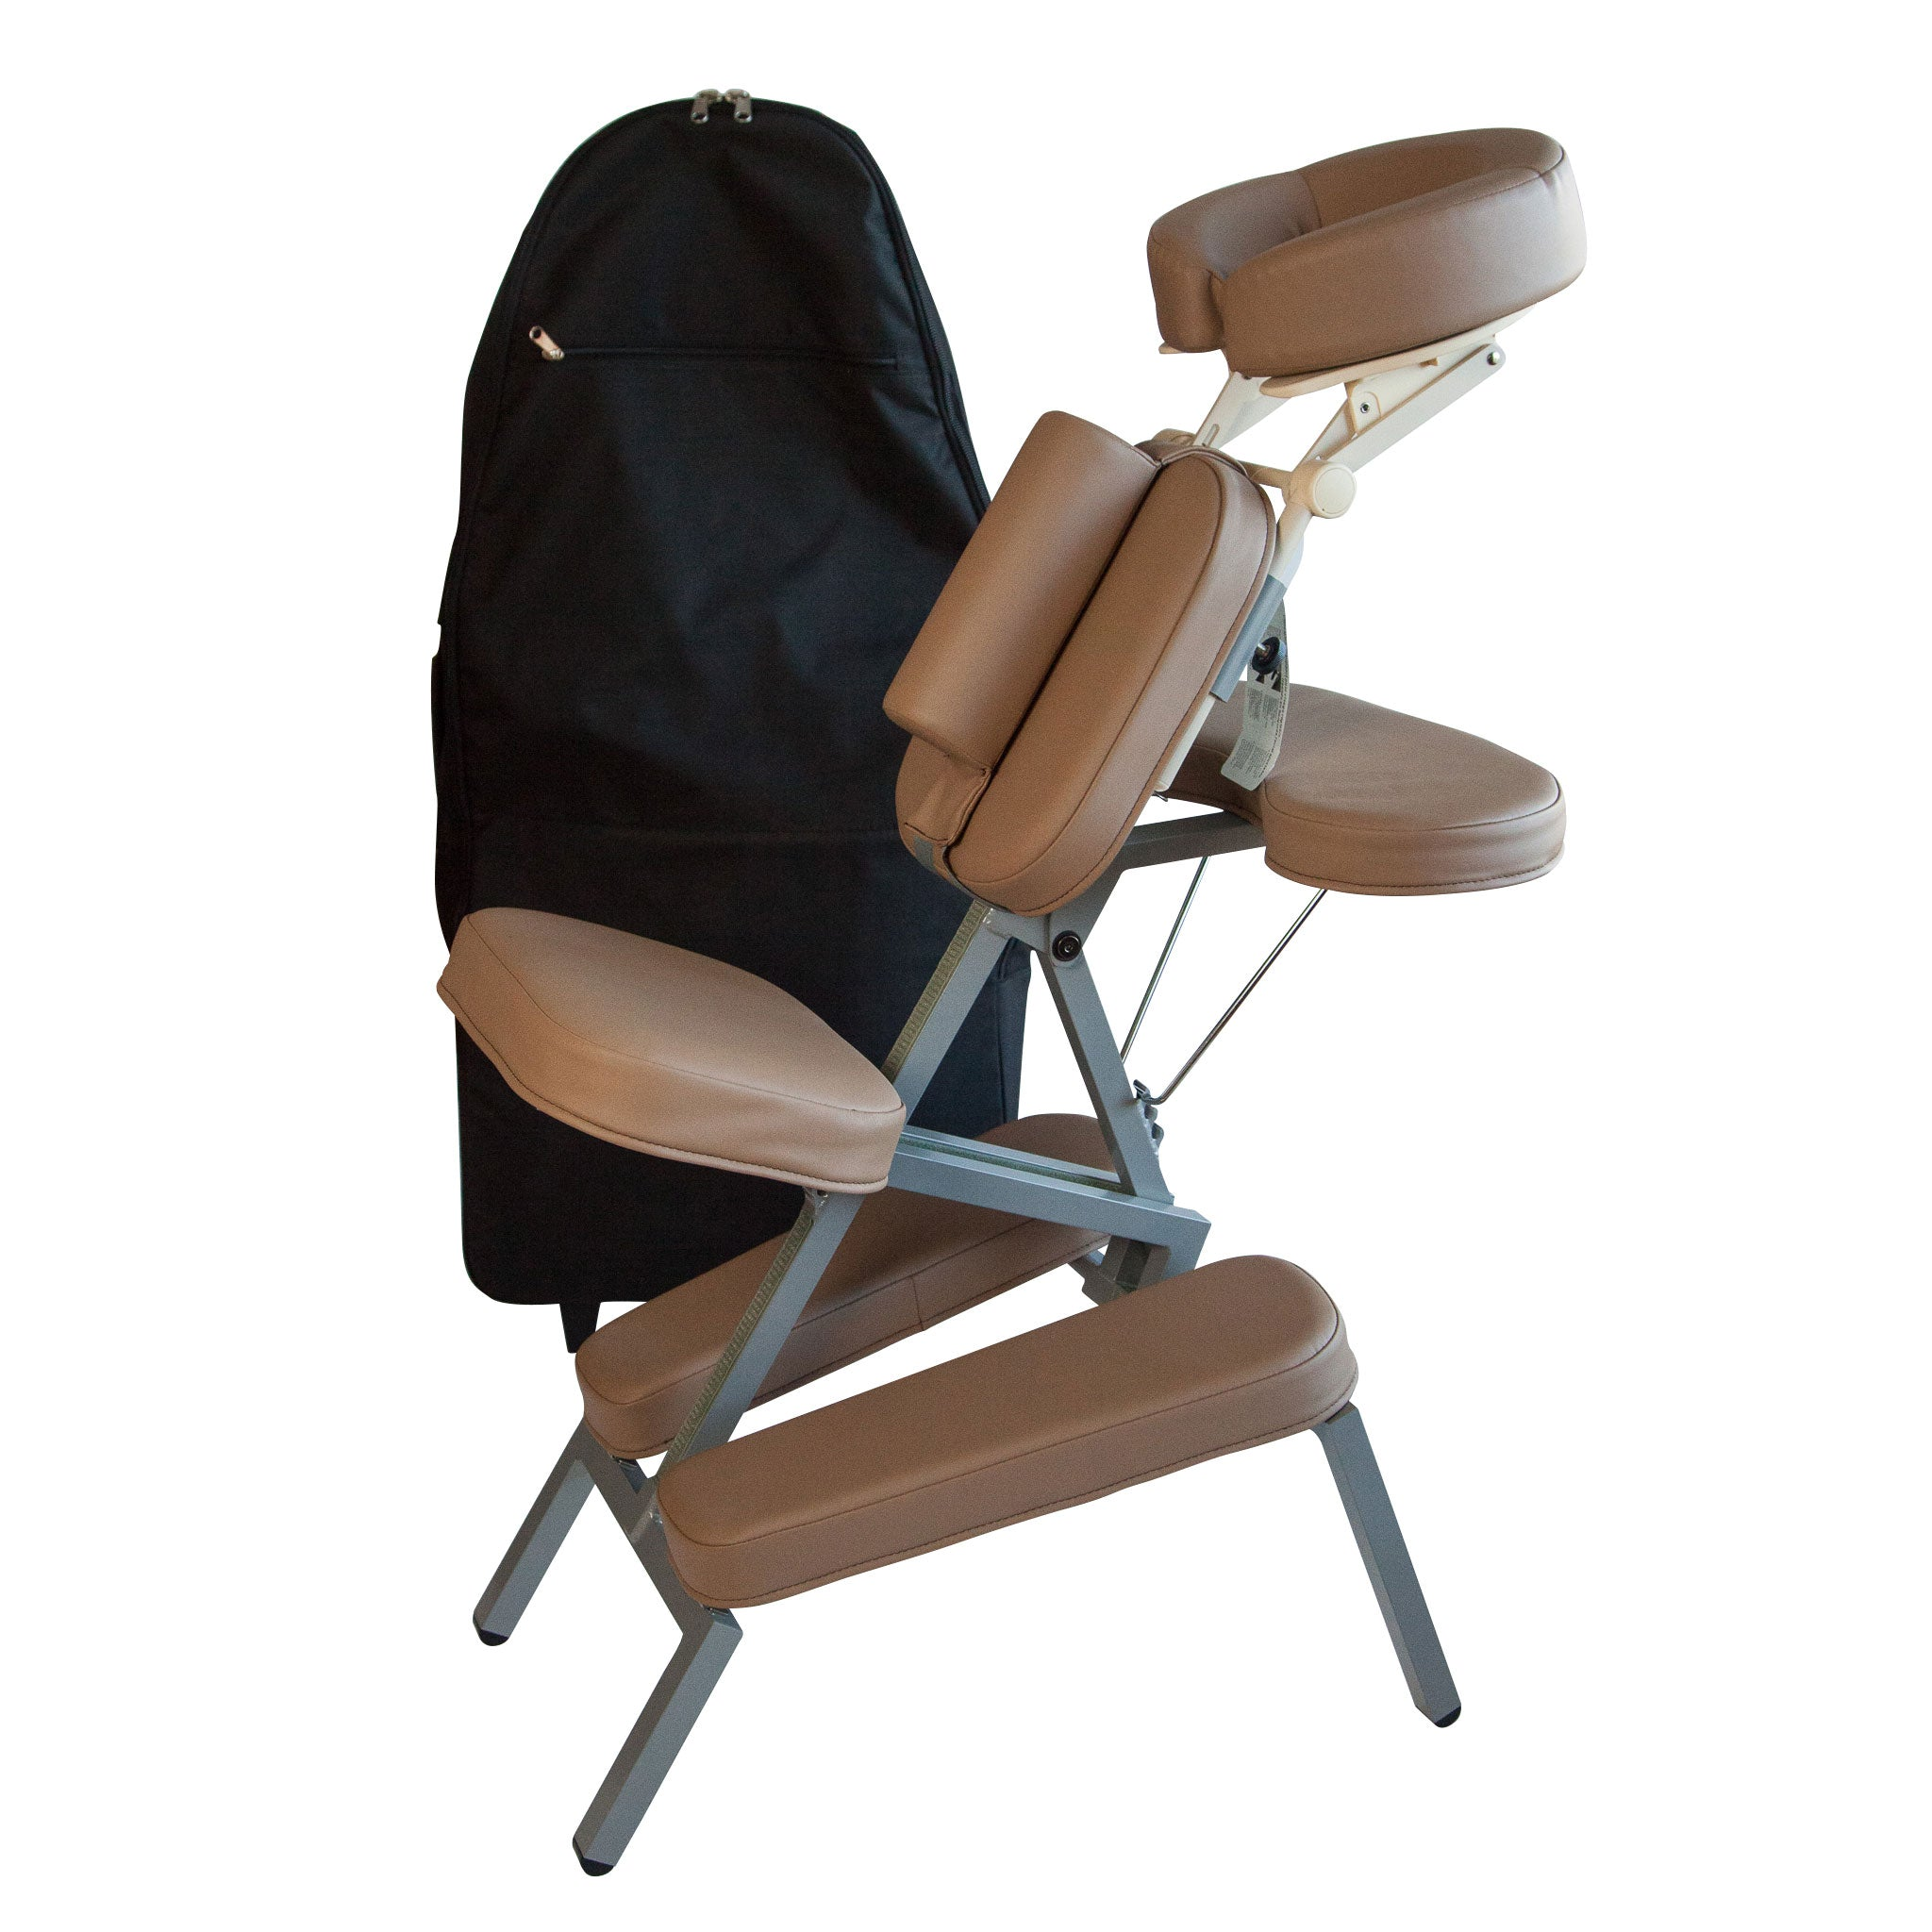 pro dreamer buy aria w chairs os x massage zero online chair products osaki gravity